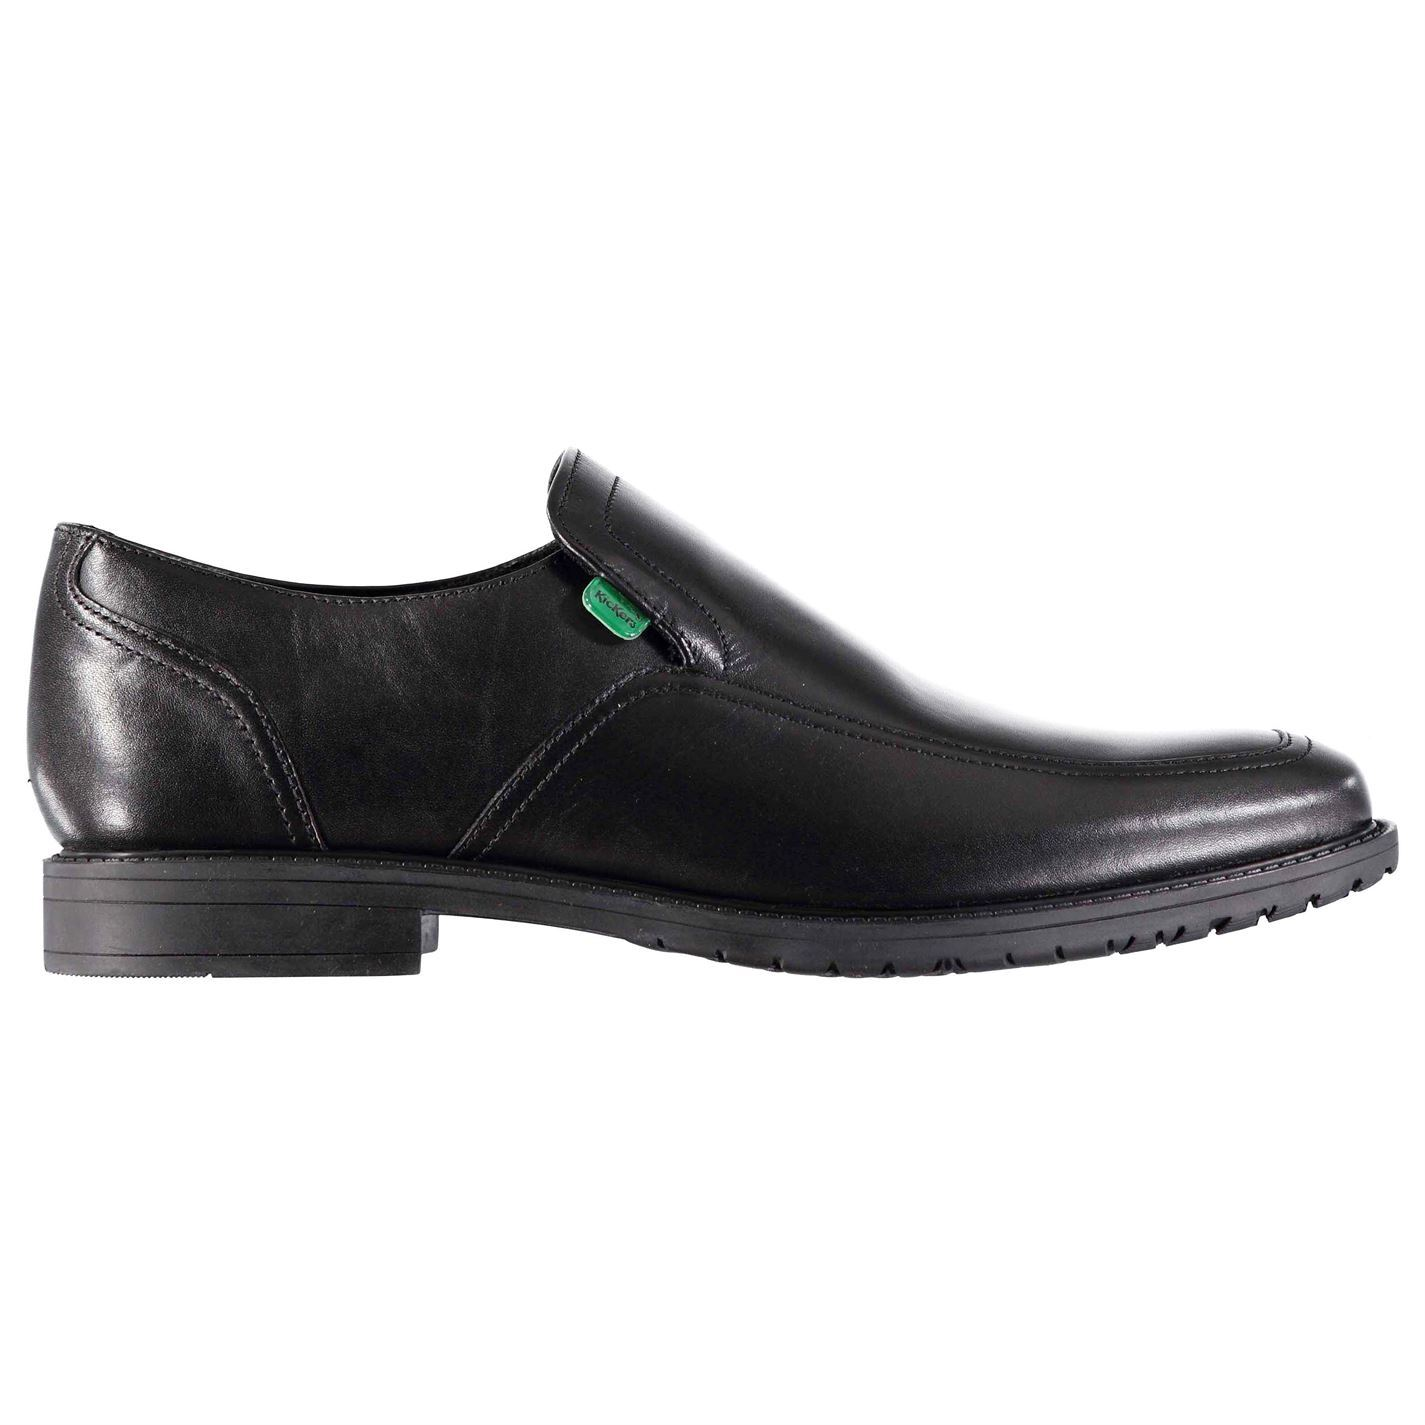 Kickers-Mens-Chreston-Slip-On-Formal-Shoes-Smart-Slight-Heel-New